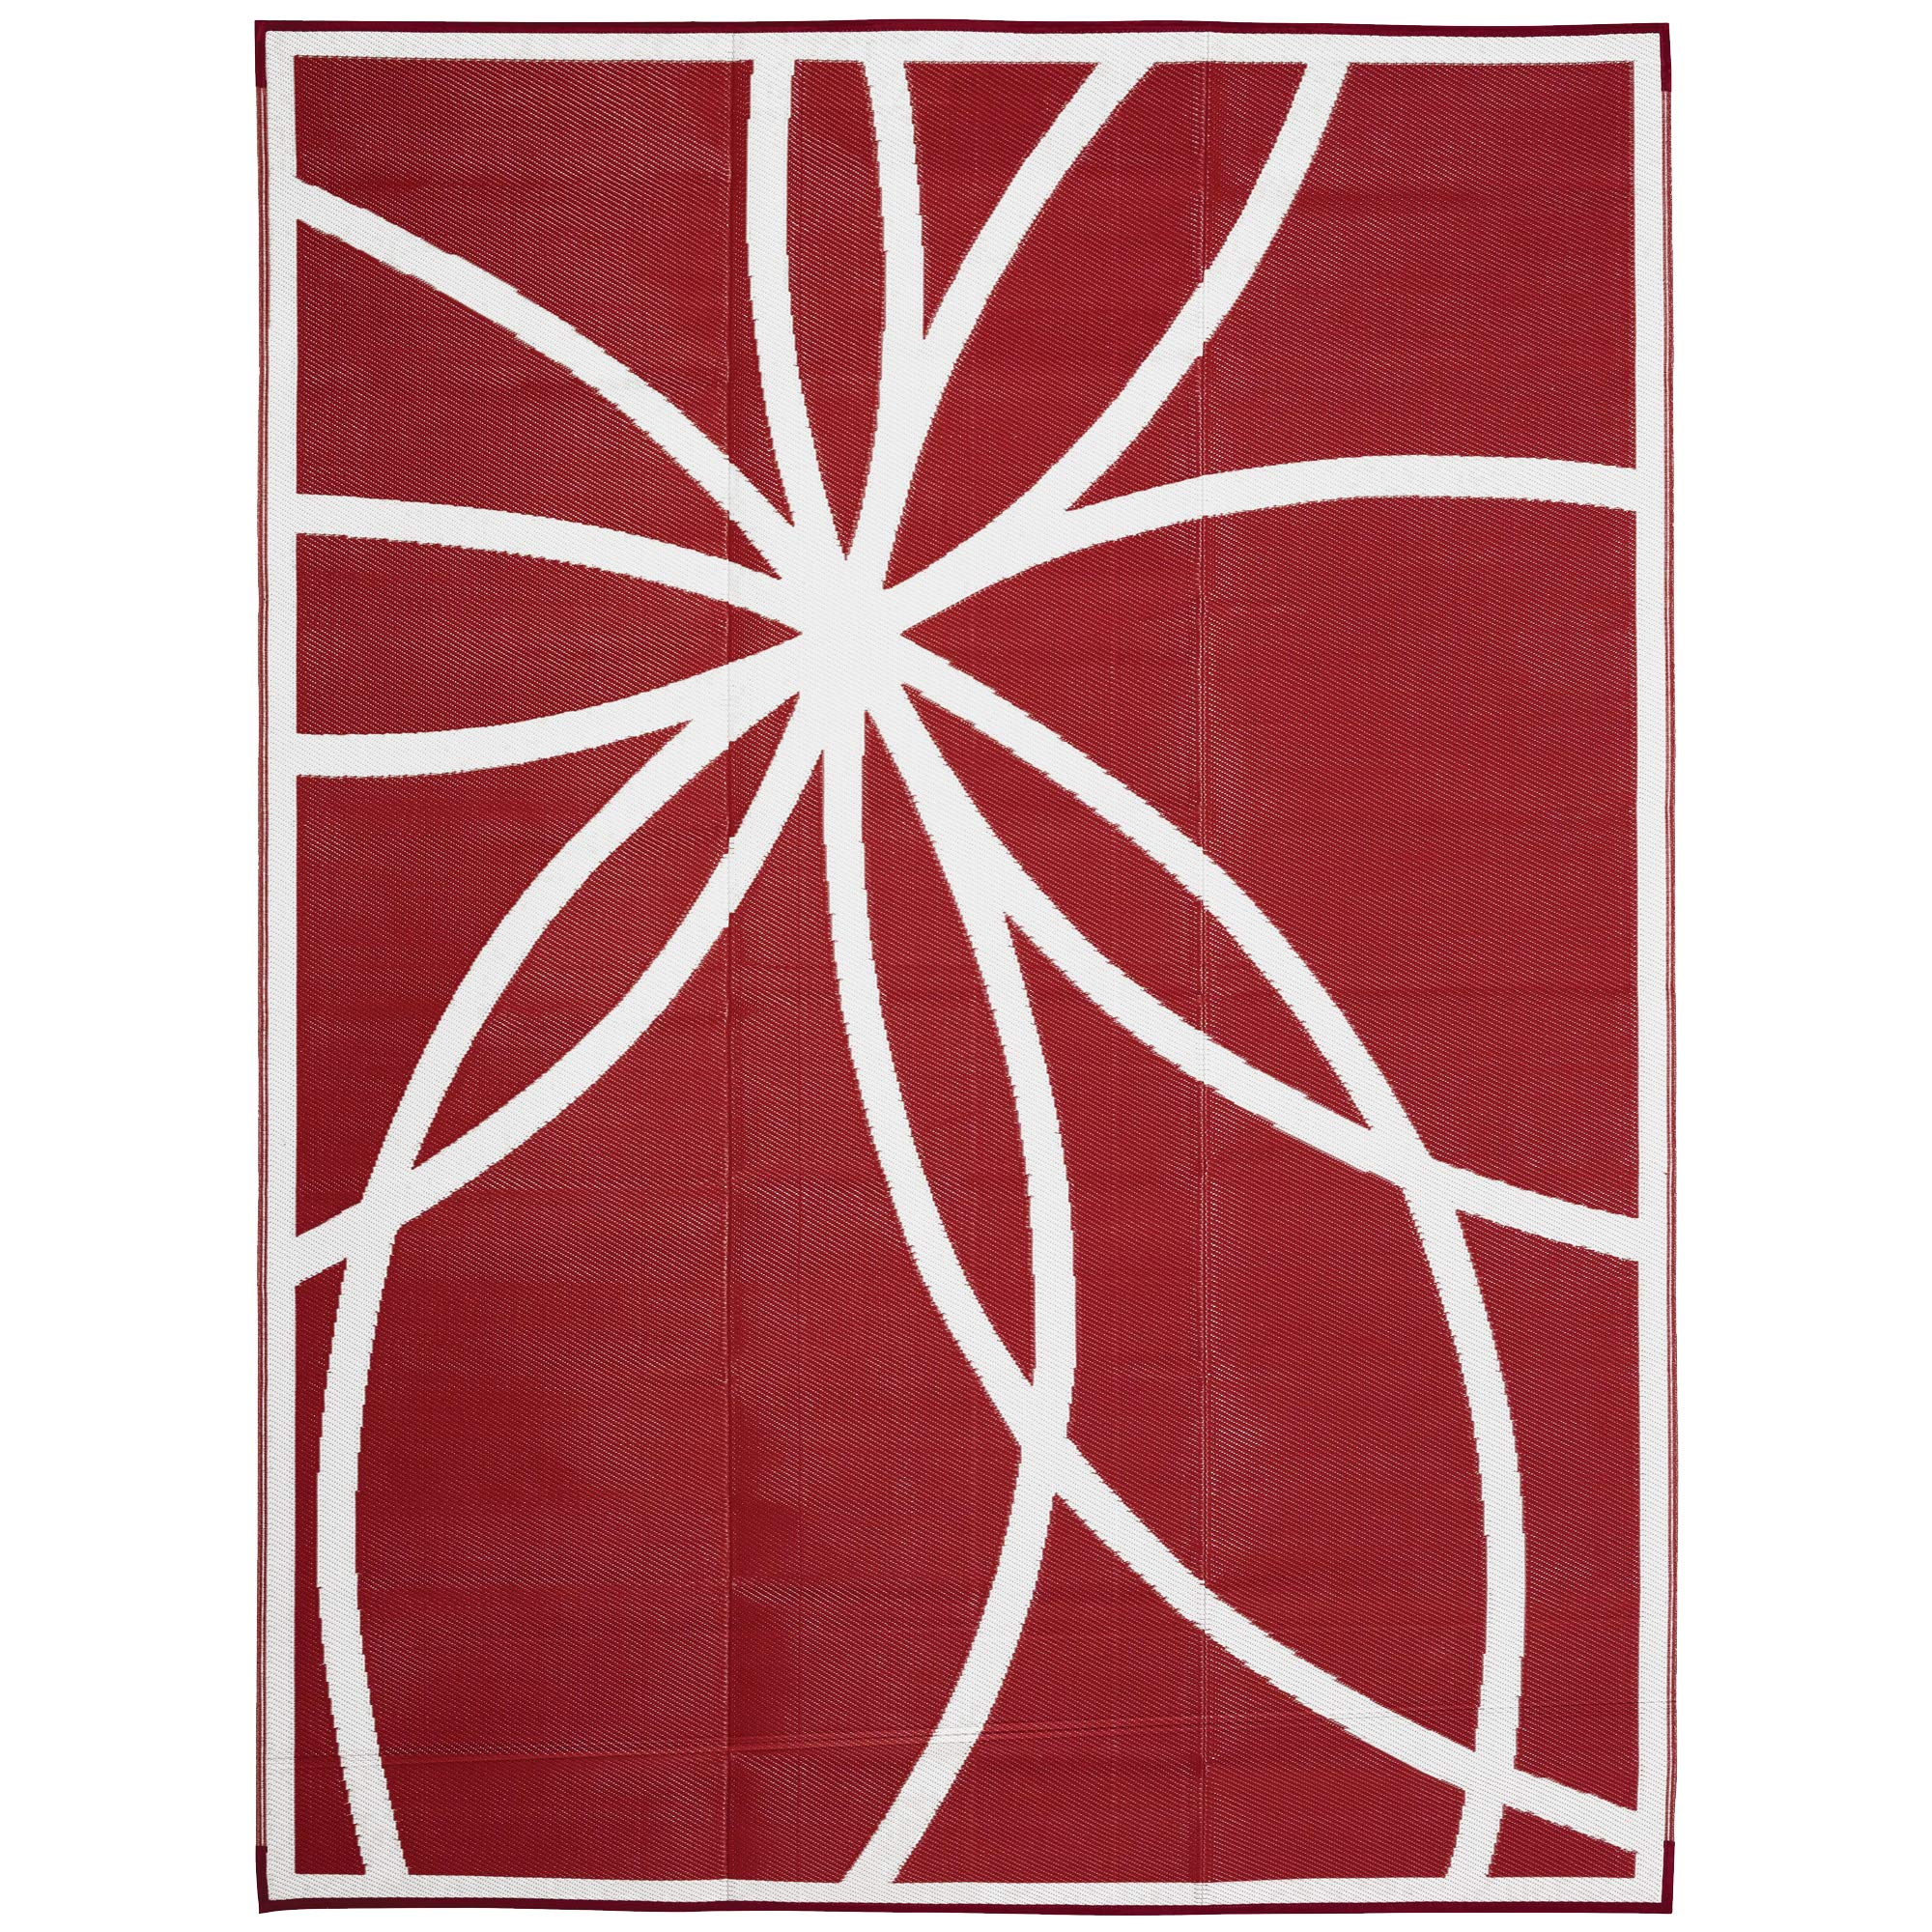 iCustomRug Inverso Outdoor Rug Collection, Reversible Plastic Area Rug 9' x 12' Will Not Fade for Patio, Balcony or Beach in Coral/Red and White